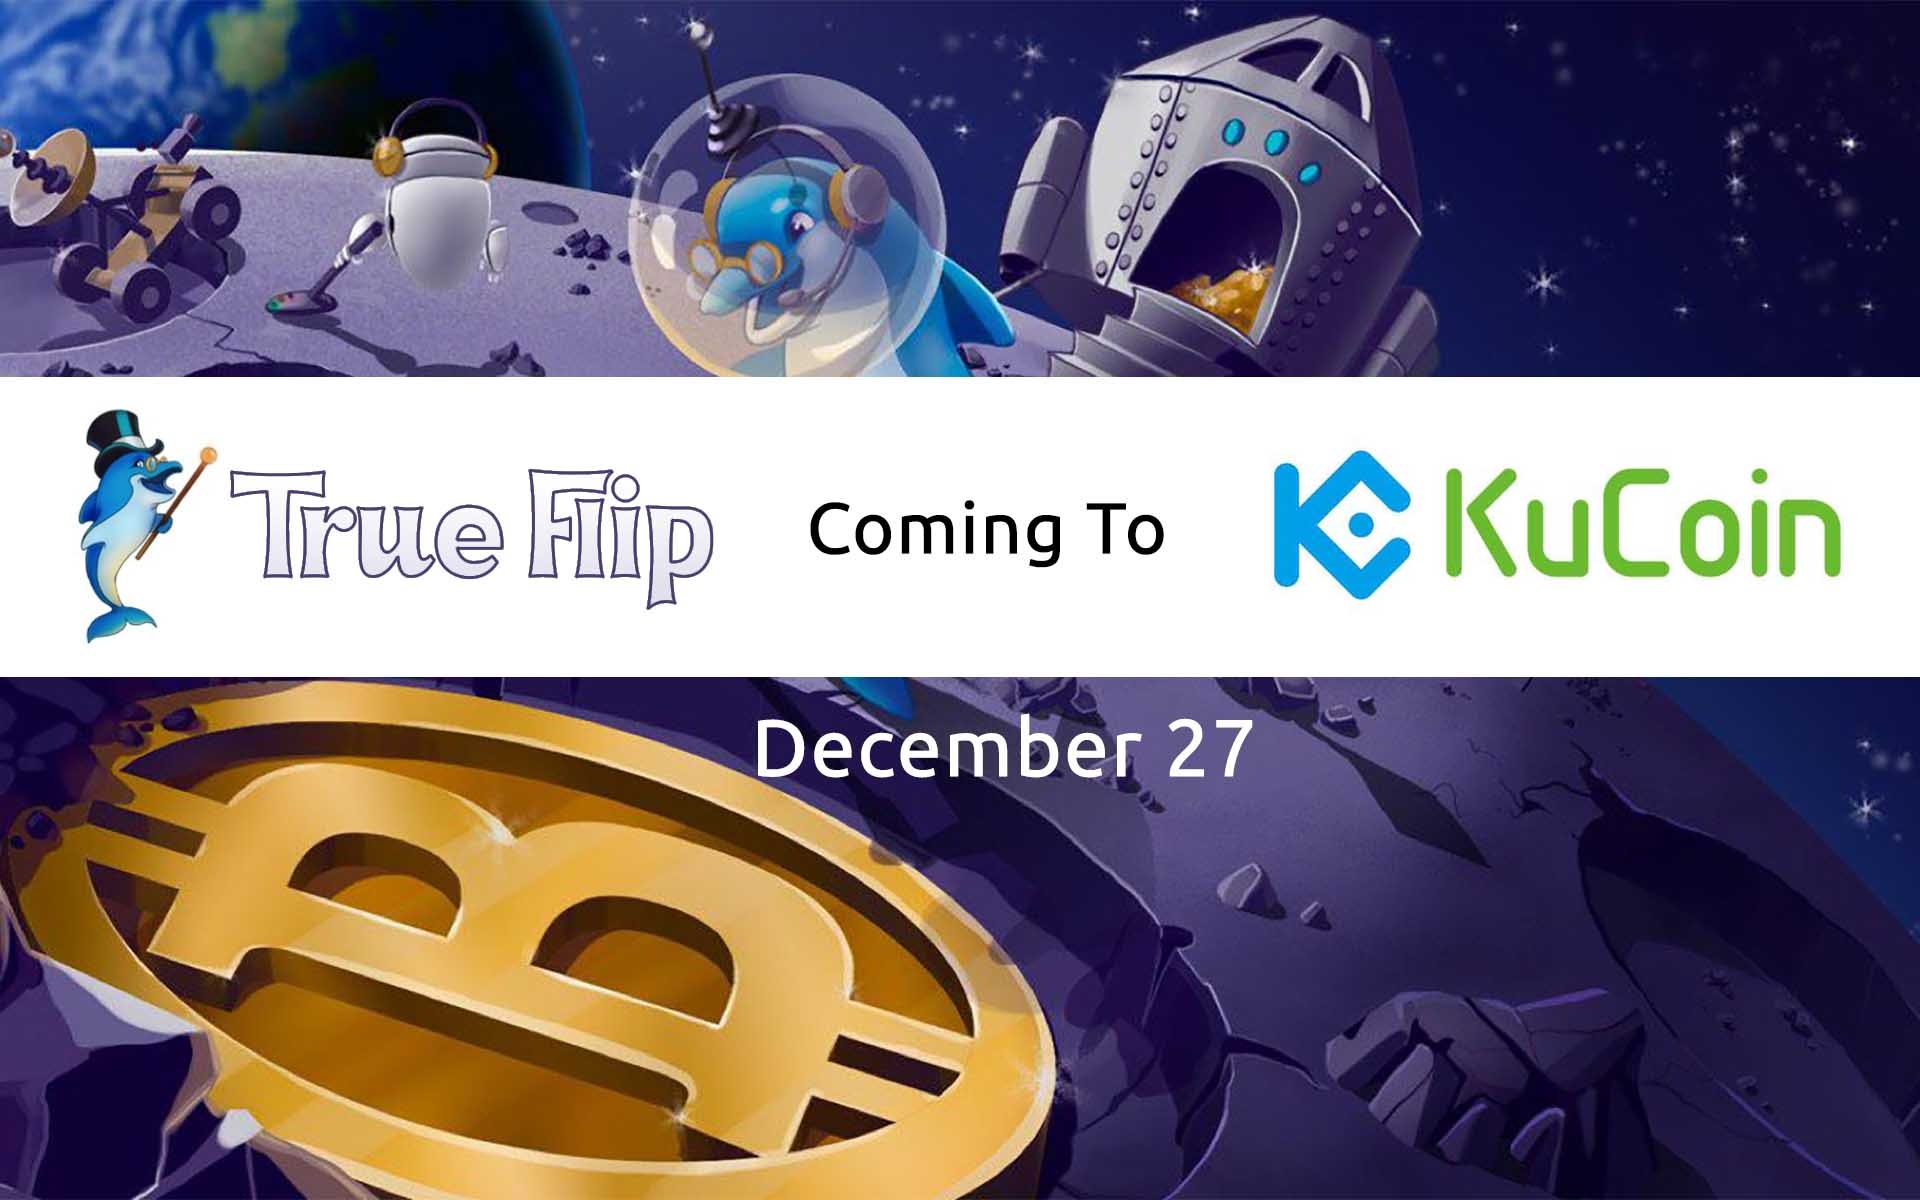 True Flip Trading Promotion On KuCoin: Trading Starts On December 27, 39,000 True Flip in Prizes!